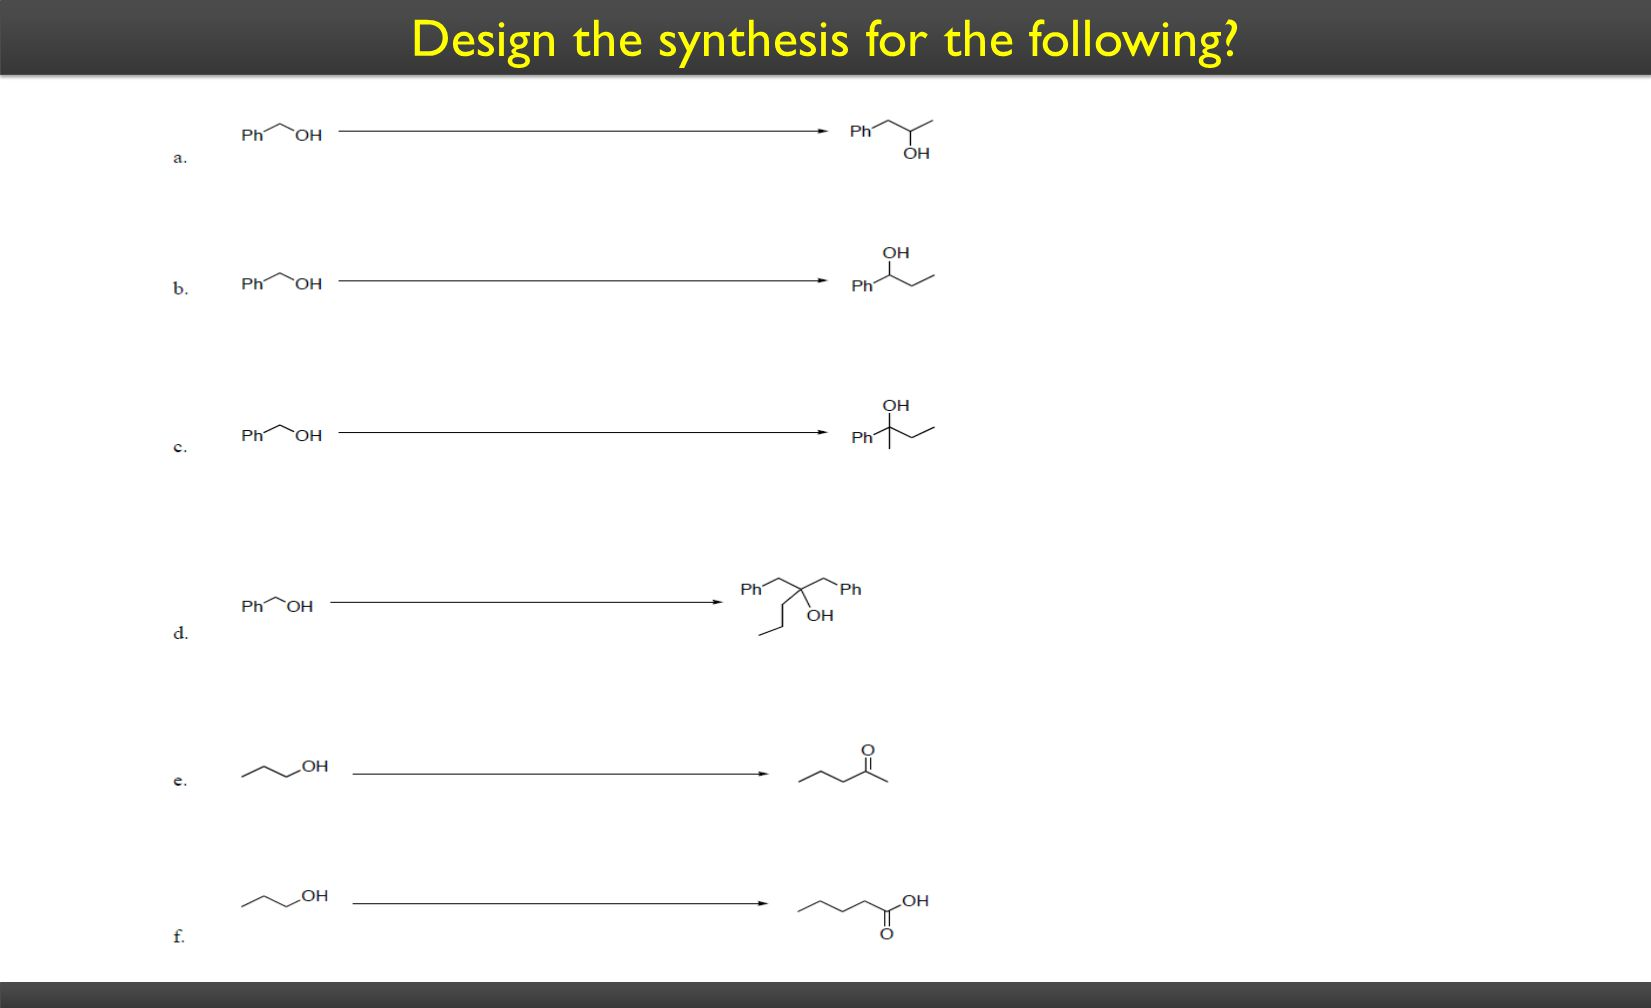 Design the synthesis for the following?